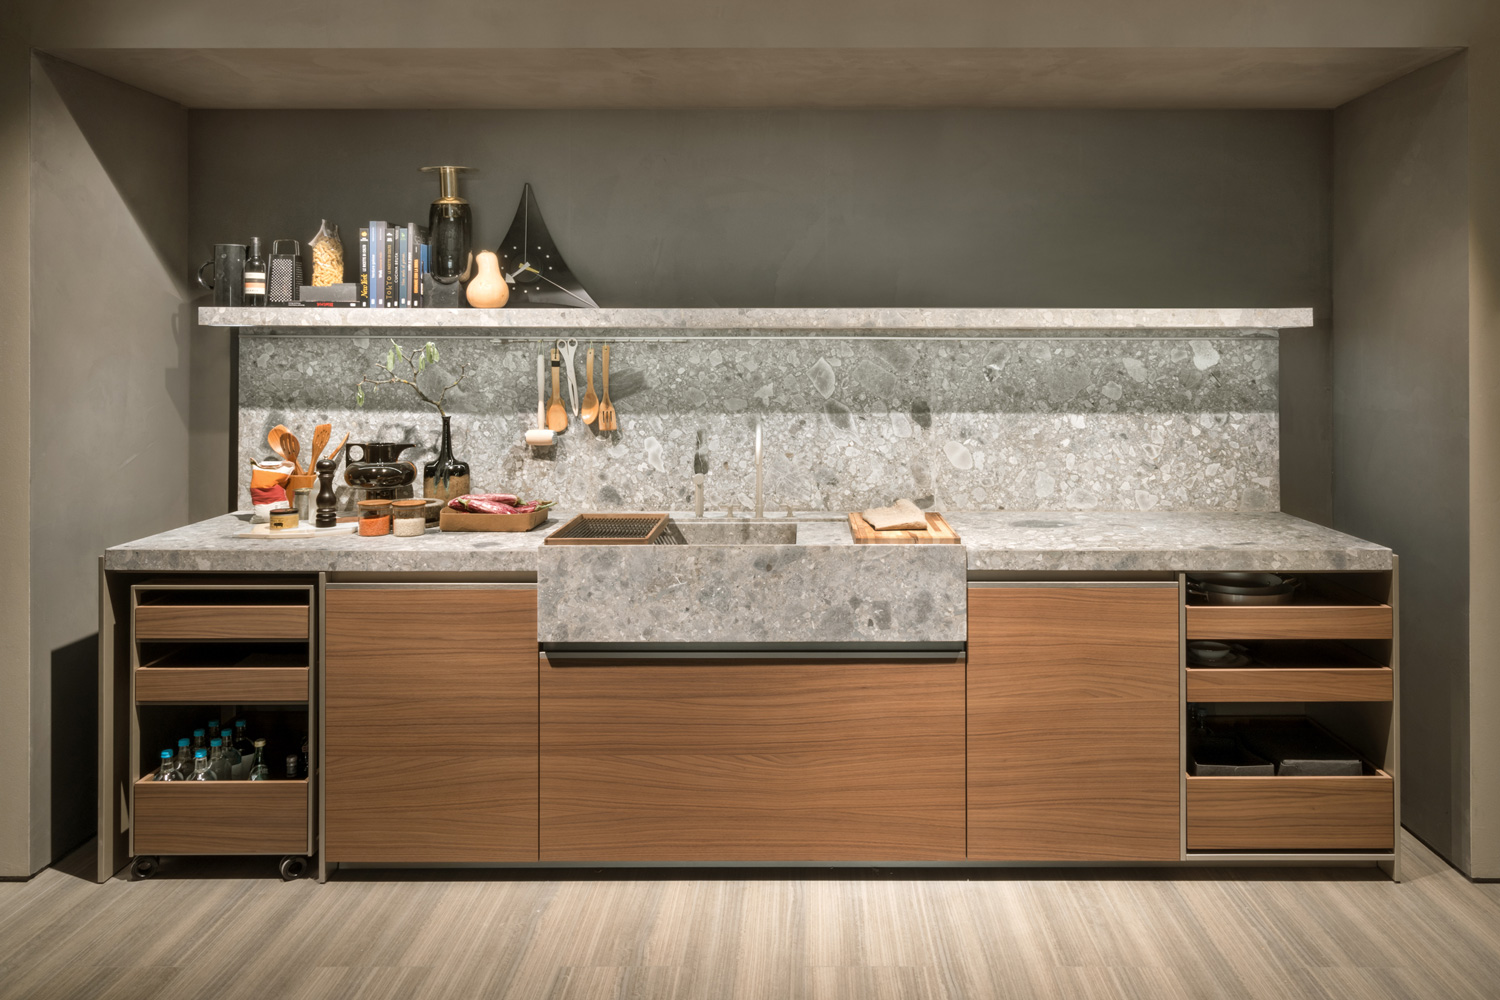 Appliances as Art and Other Kitchen Trends from Eurocucina 2016